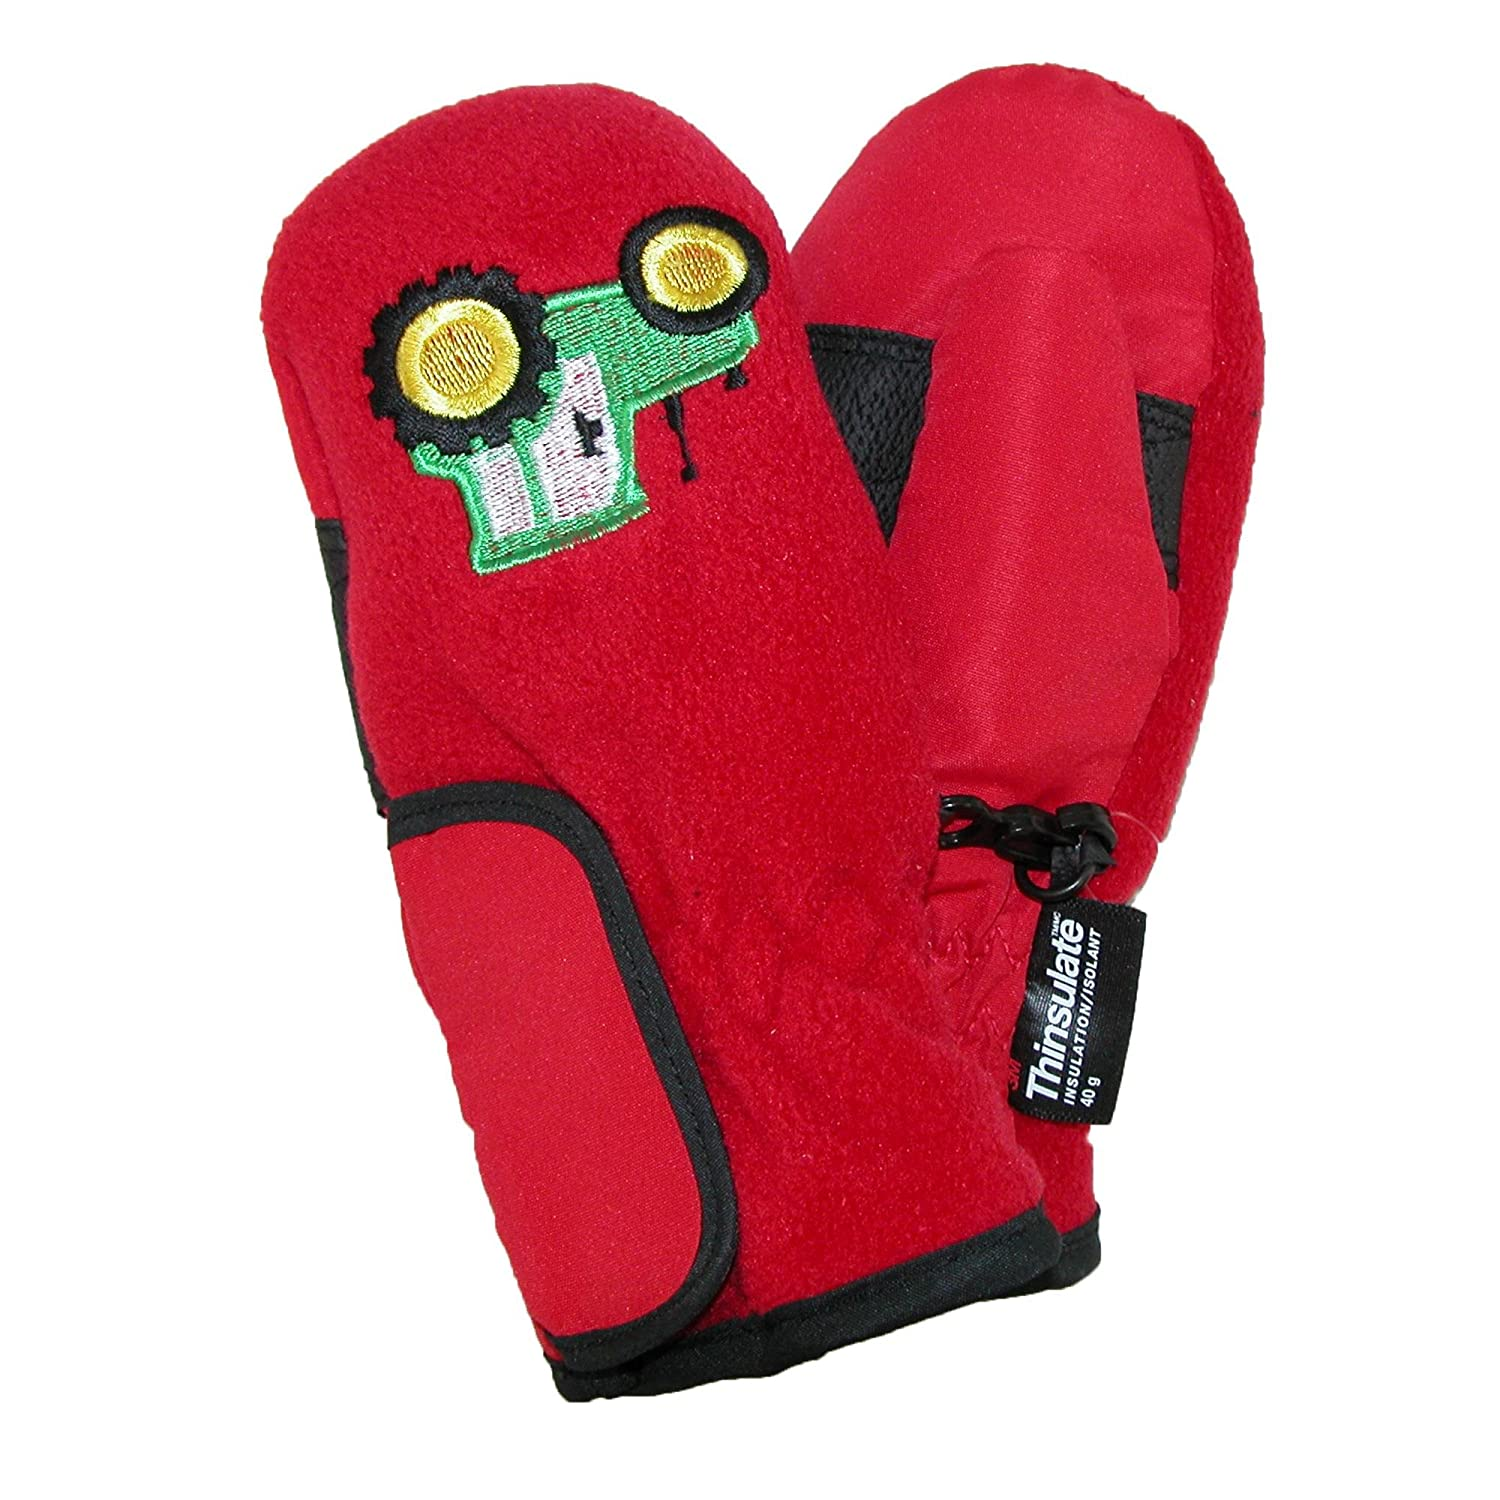 Grand Sierra Toddlers 2-4 Embroidered Waterproof Mittens, Red with Tractors